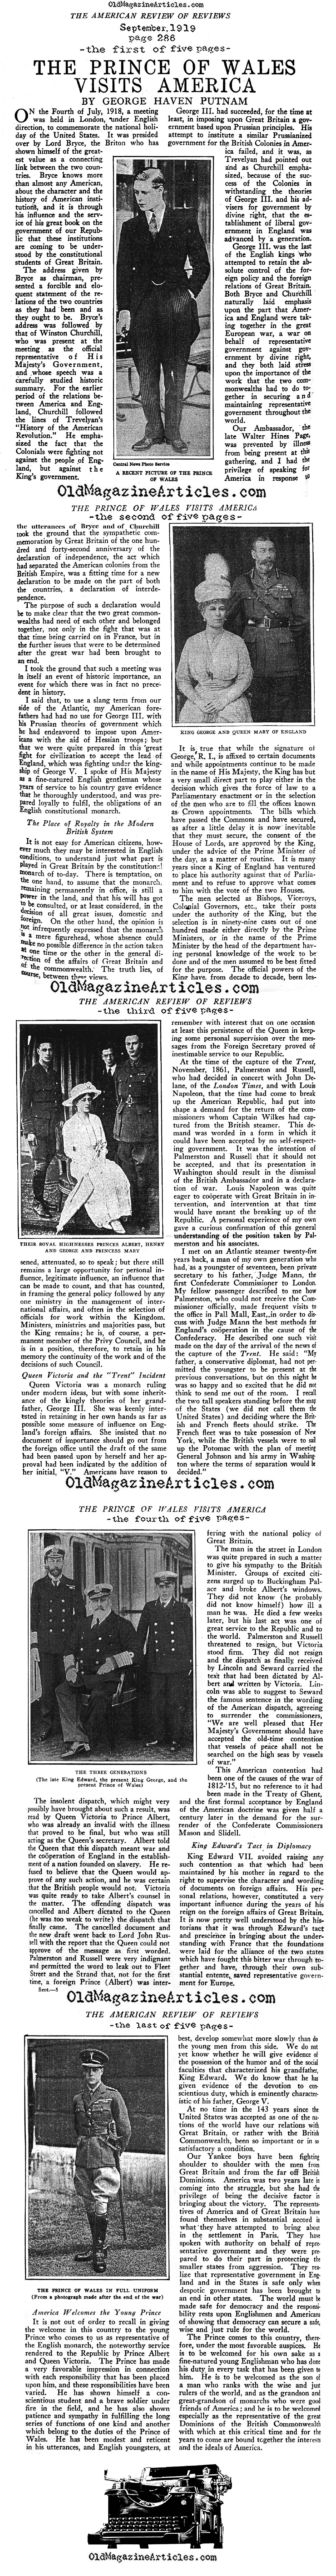 The Prince of Wales Visits America (Review of Reviews, 1919)